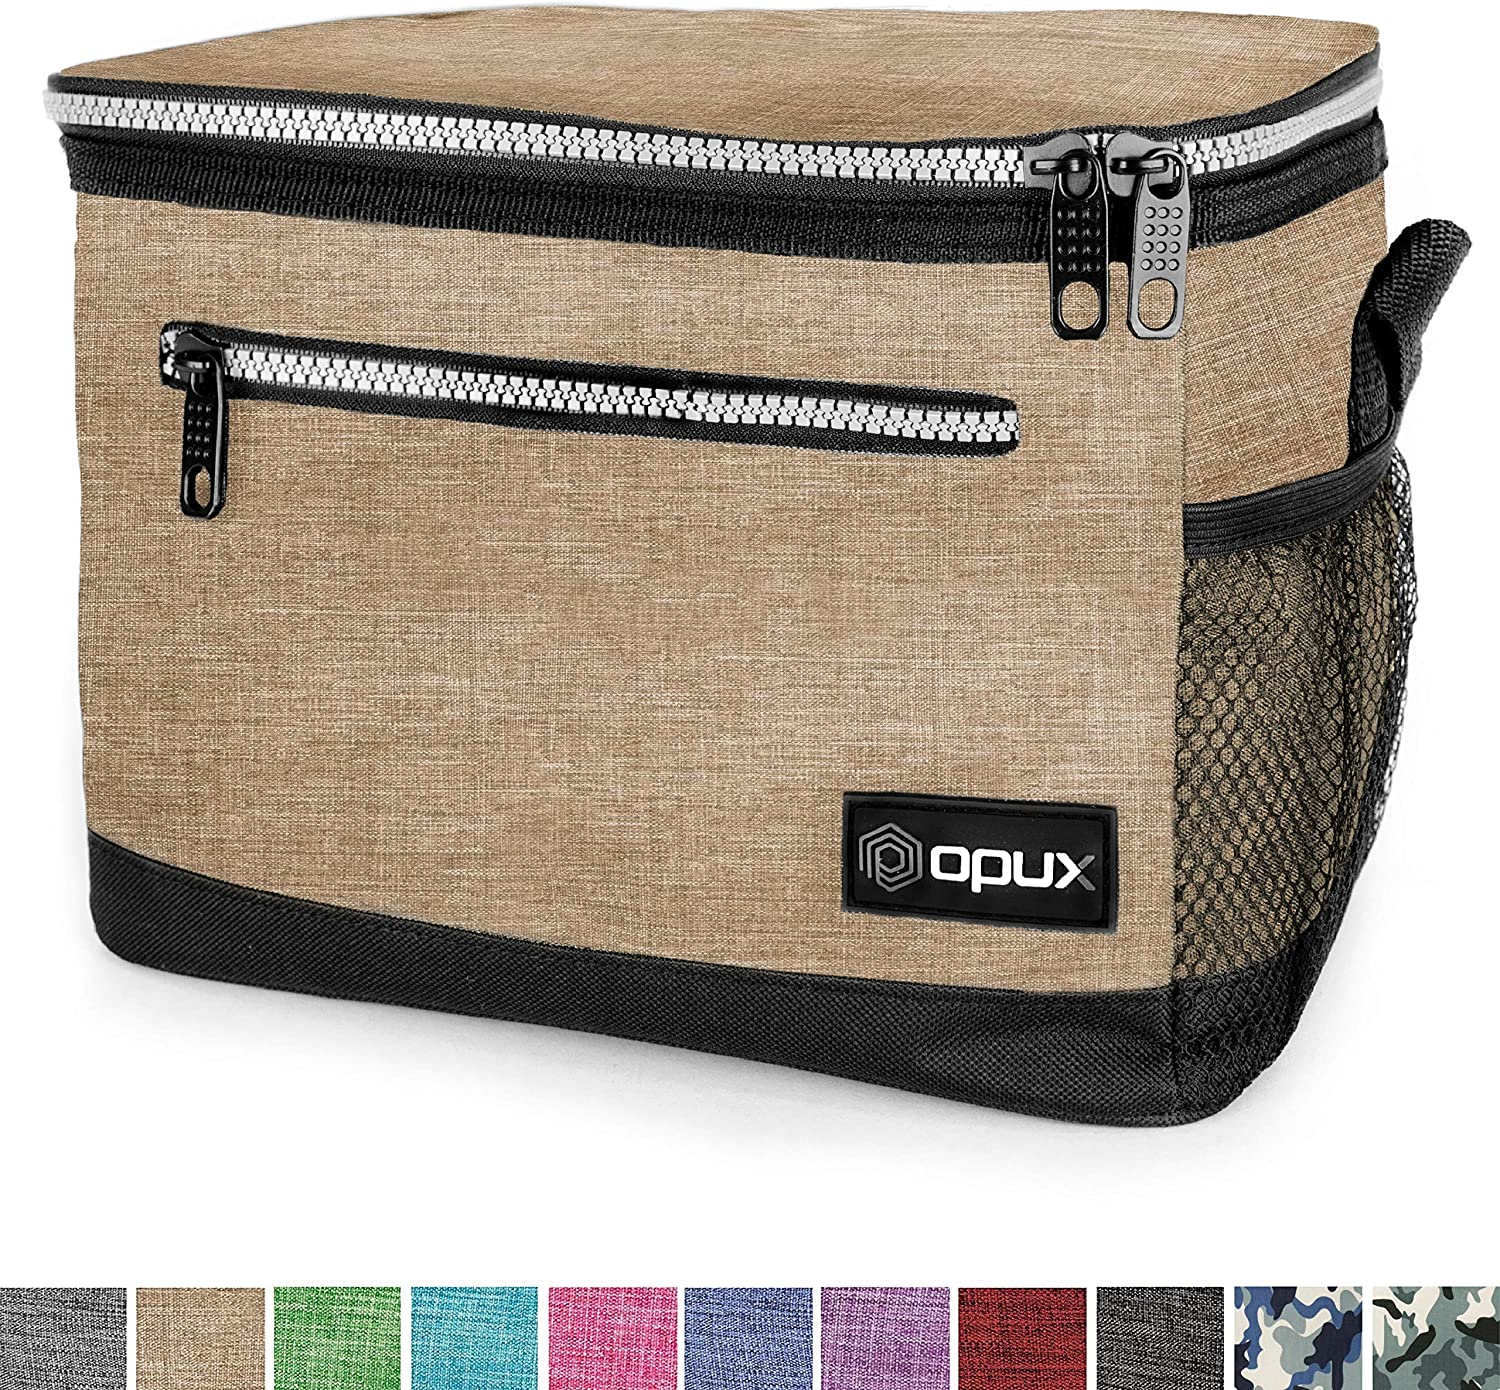 OPUX Premium Lunch Box, Insulated Lunch Bag for Men Women Adult | Durable School Lunch Pail for Boys, Girls, Kids | Soft Leakproof Medium Lunch Cooler Tote for Work Office | Fits 8 Cans (H Taupe)